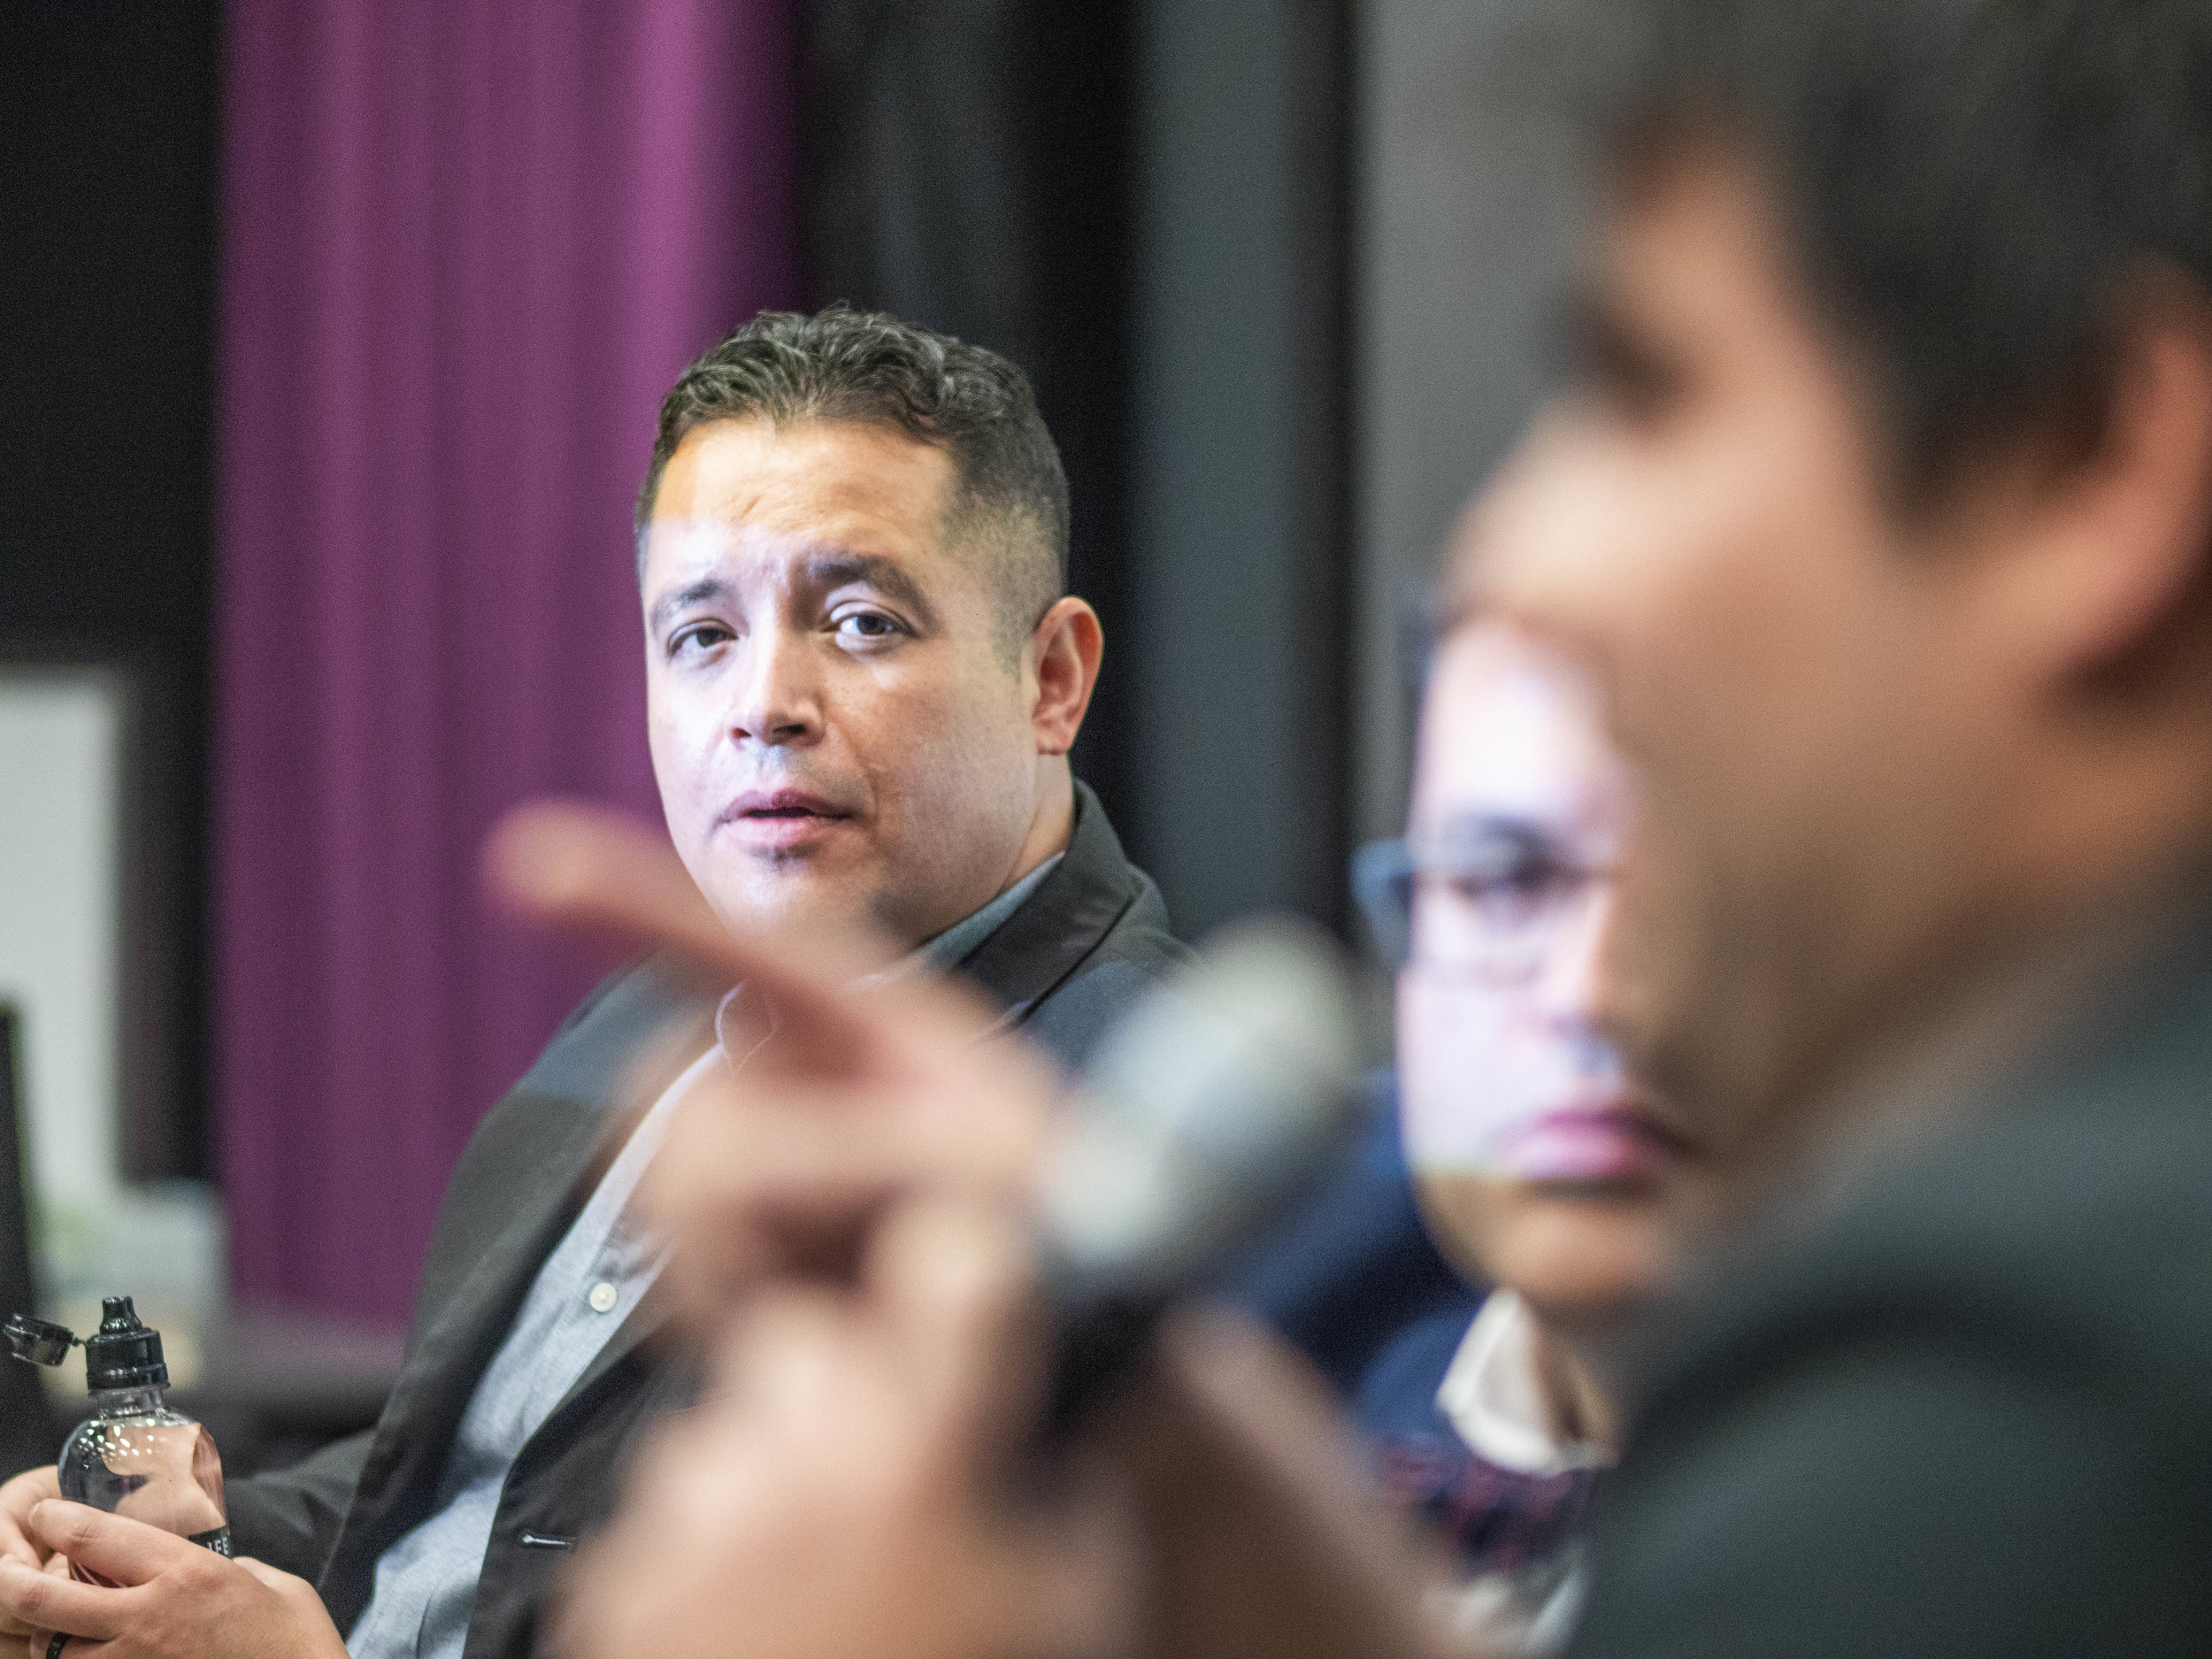 "Santa Monica College (SMC) student and Producer Dennis Sandovol listens to Writer Director Oswaldo Ozuna after the screening of ""Muñecas,"" on Tuesday, May 7, 2019 at the SMC Center for Media Design. Rengifo is a Rotten Tomatoes Certified Film Reviewer and former SMC student and Sandovol is currently taking a Cinematography class at SMC and says ""I'm learning a lot in it, it's great."" ""Muñecas"" won the Best Student Film Award at the 2017 Prague Independent Film Festival in 2017. Santa Monica, California. (Victor Noerdlinger/Corsair)"